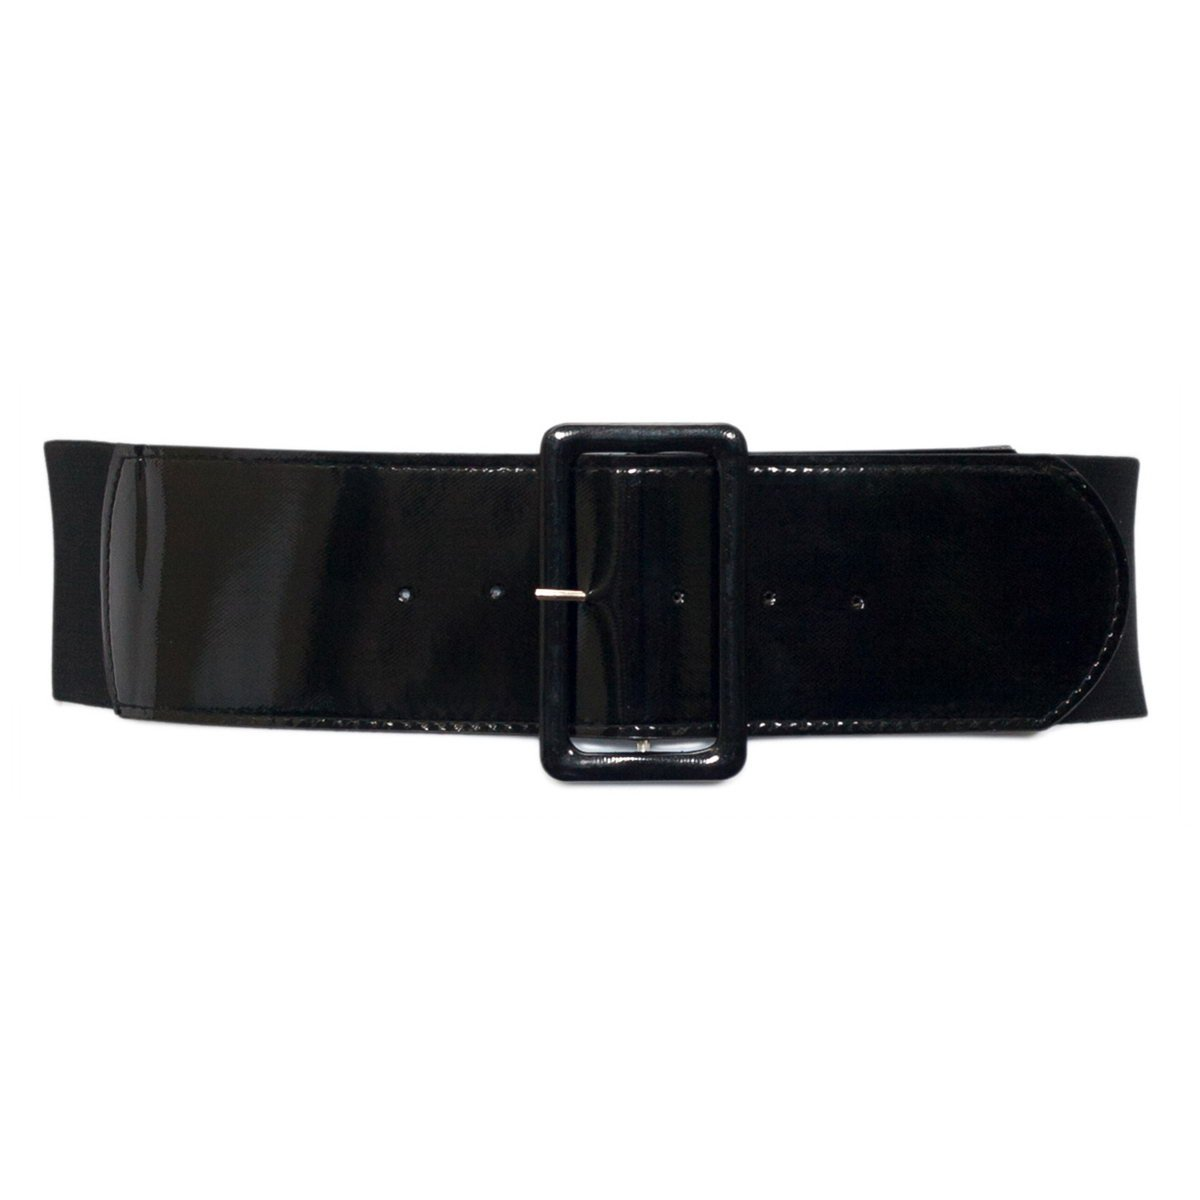 eVogues Women's Wide Patent Leather Fashion Belt Black - One Size Junior